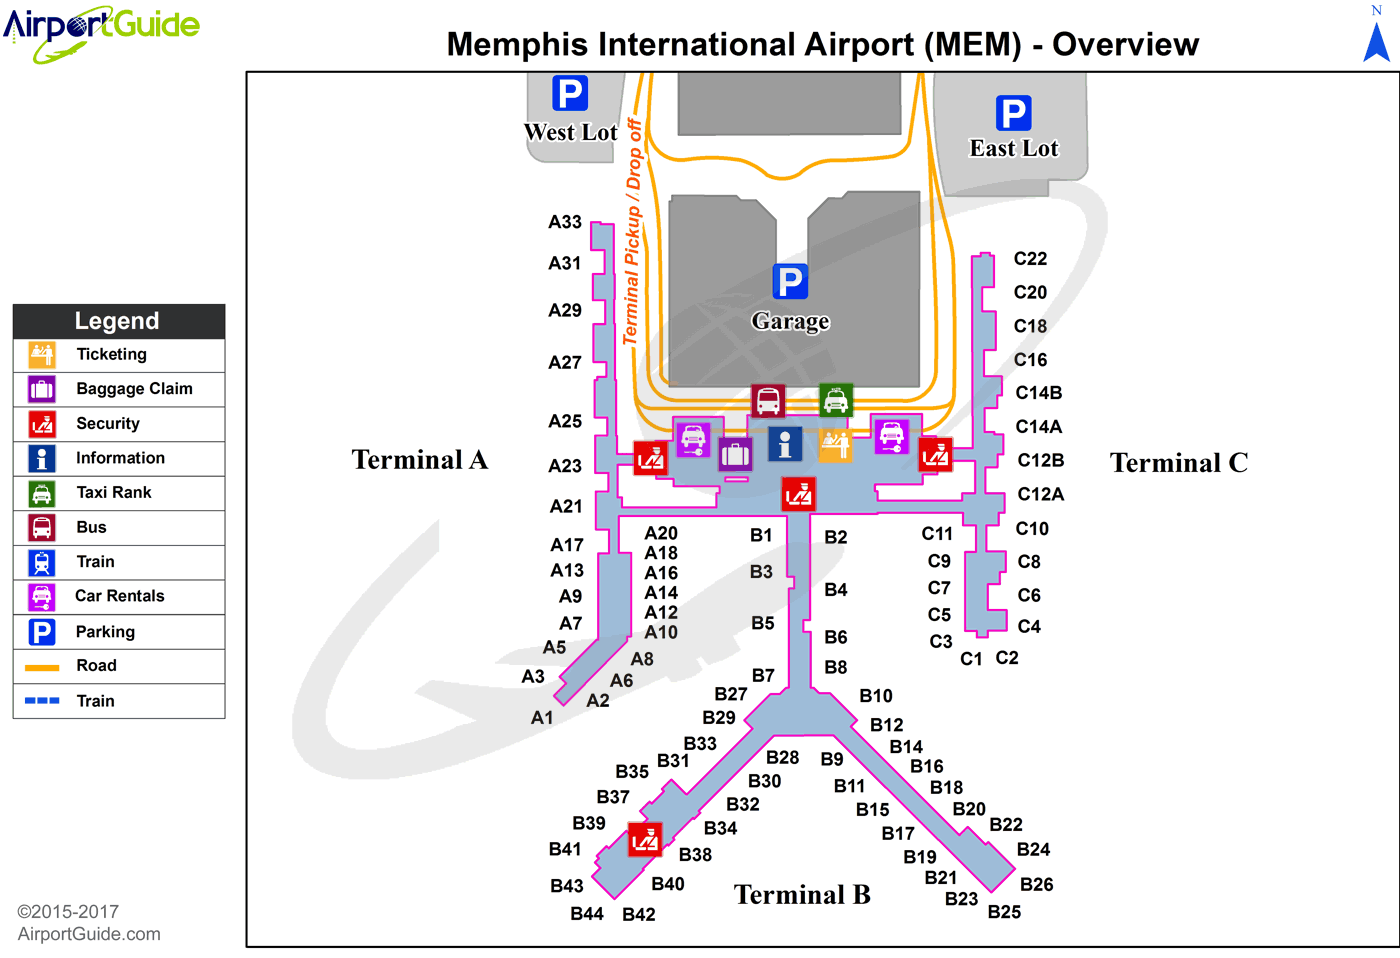 Memphis - Memphis International (MEM) Airport Terminal Map - Overview